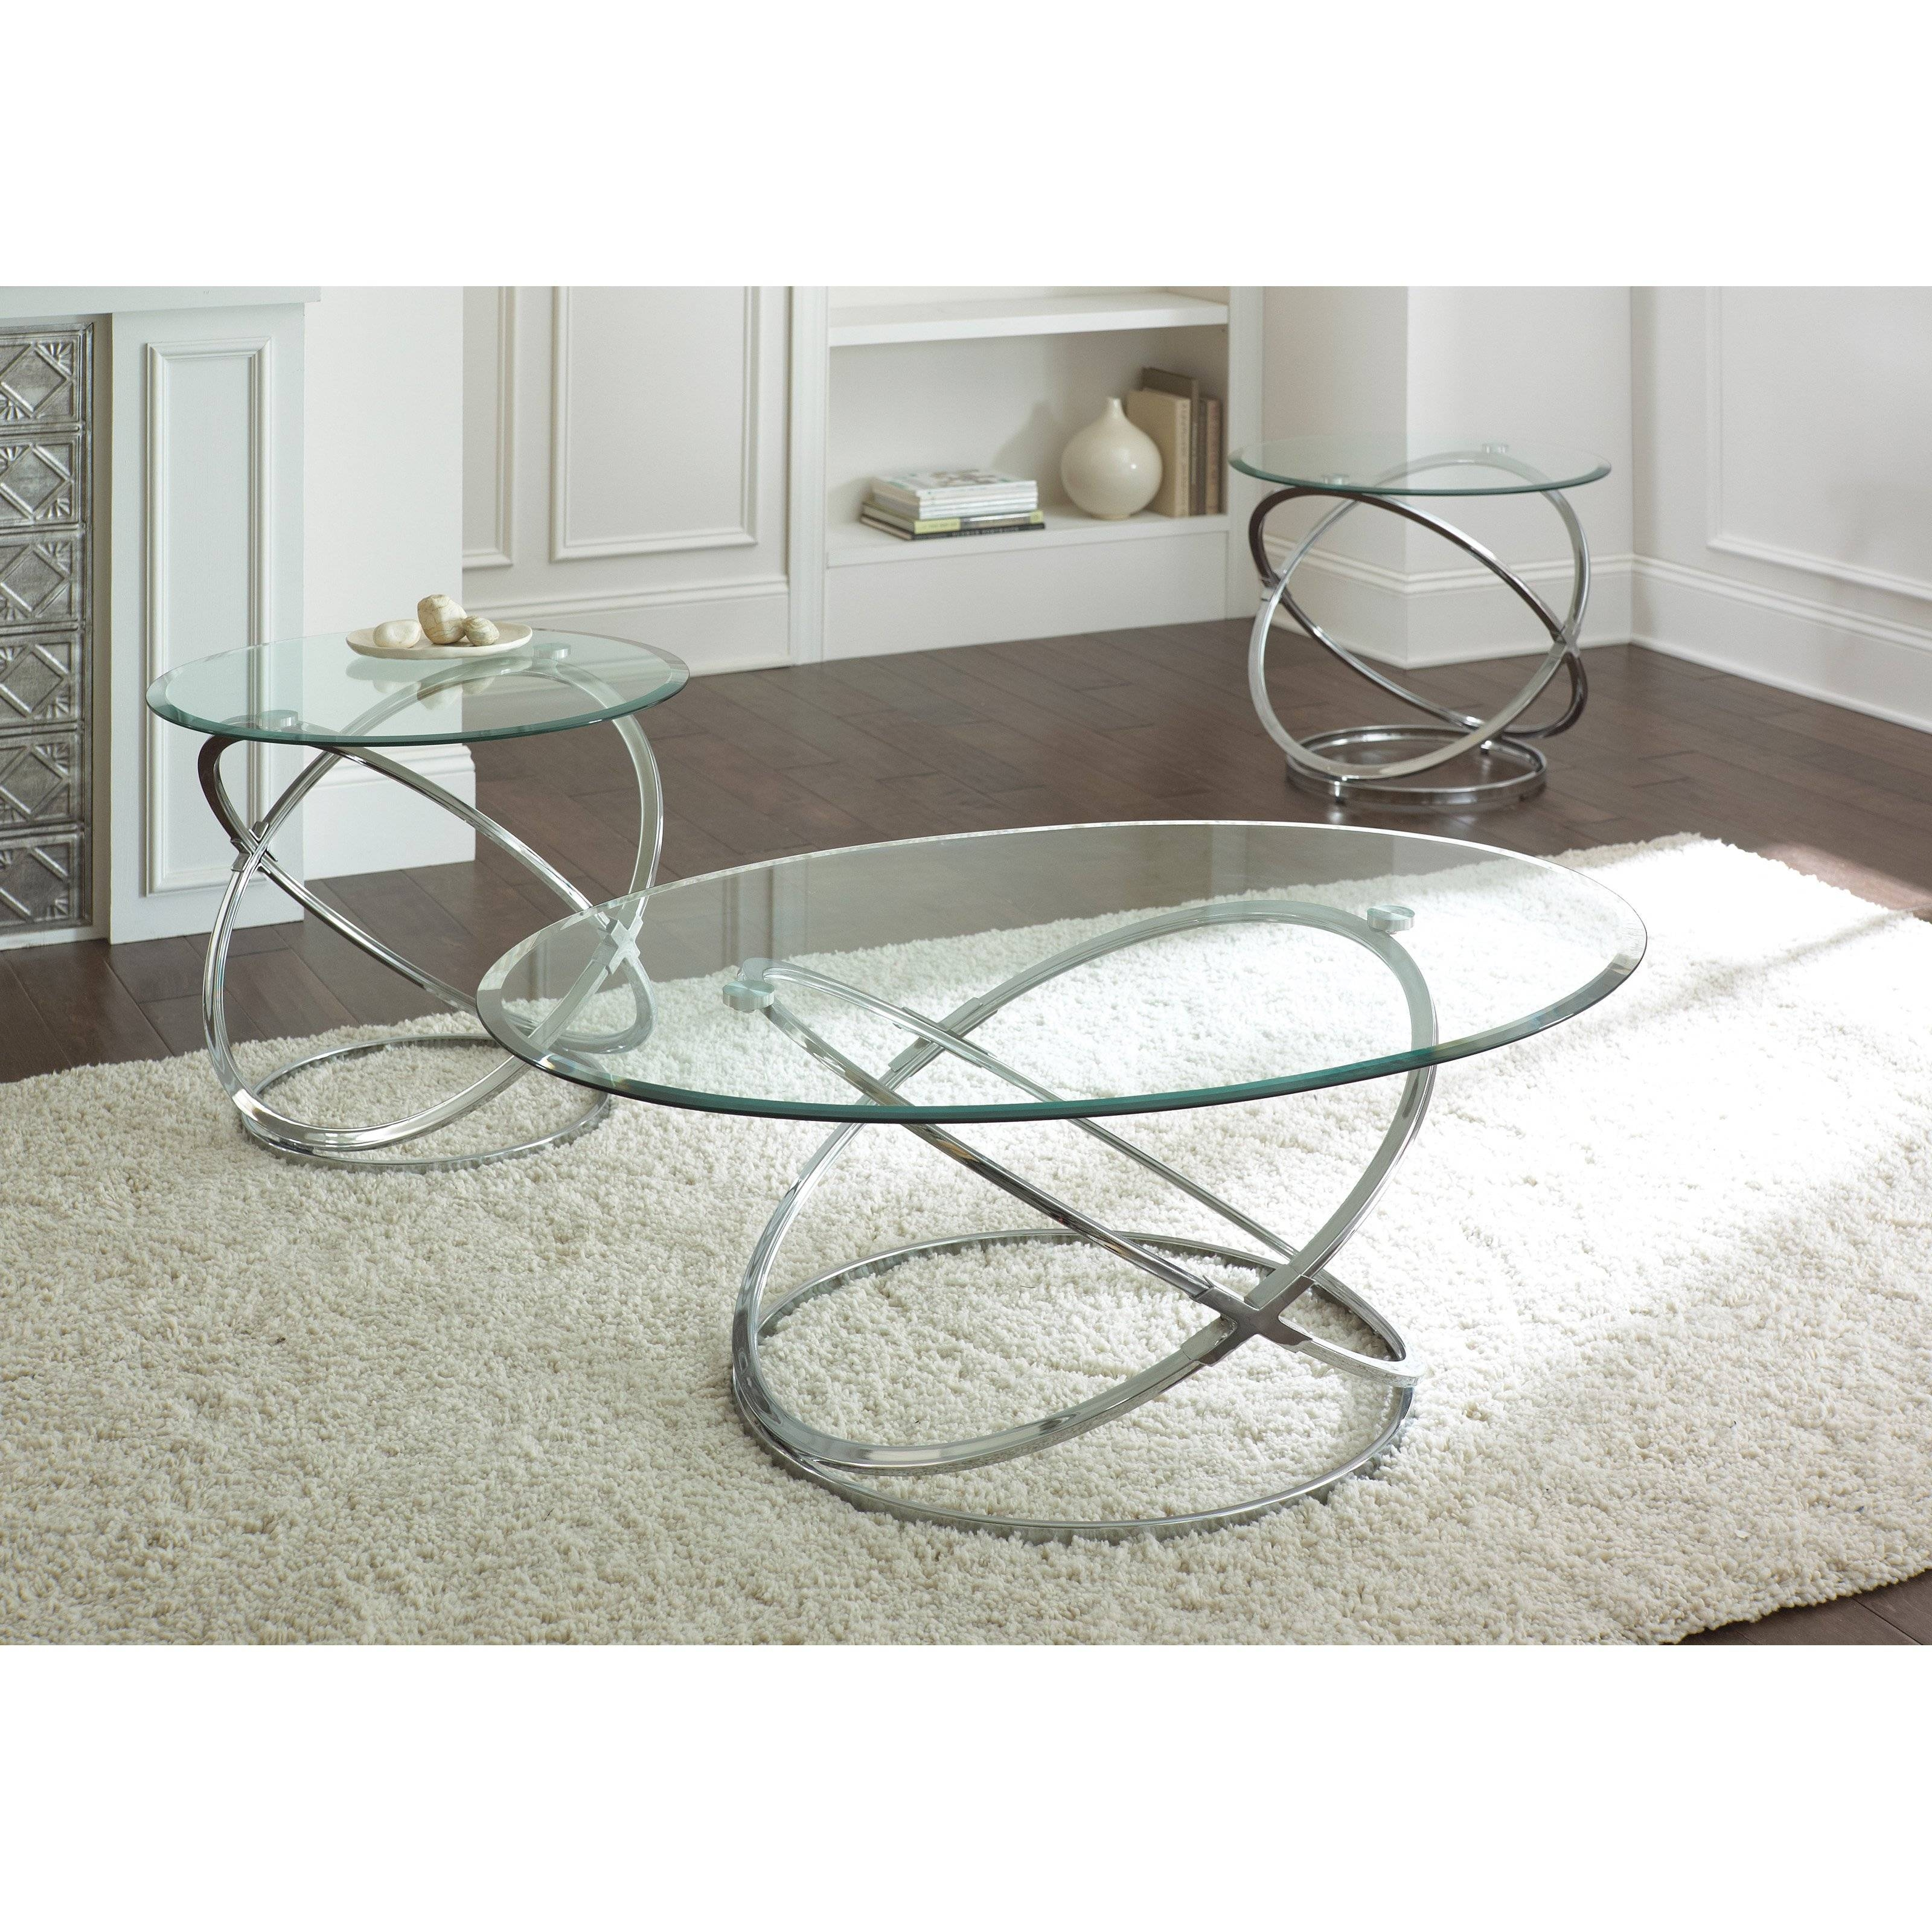 Steve Silver Orion Oval Chrome And Glass Coffee Table Set - Coffee inside White And Chrome Coffee Tables (Image 28 of 30)